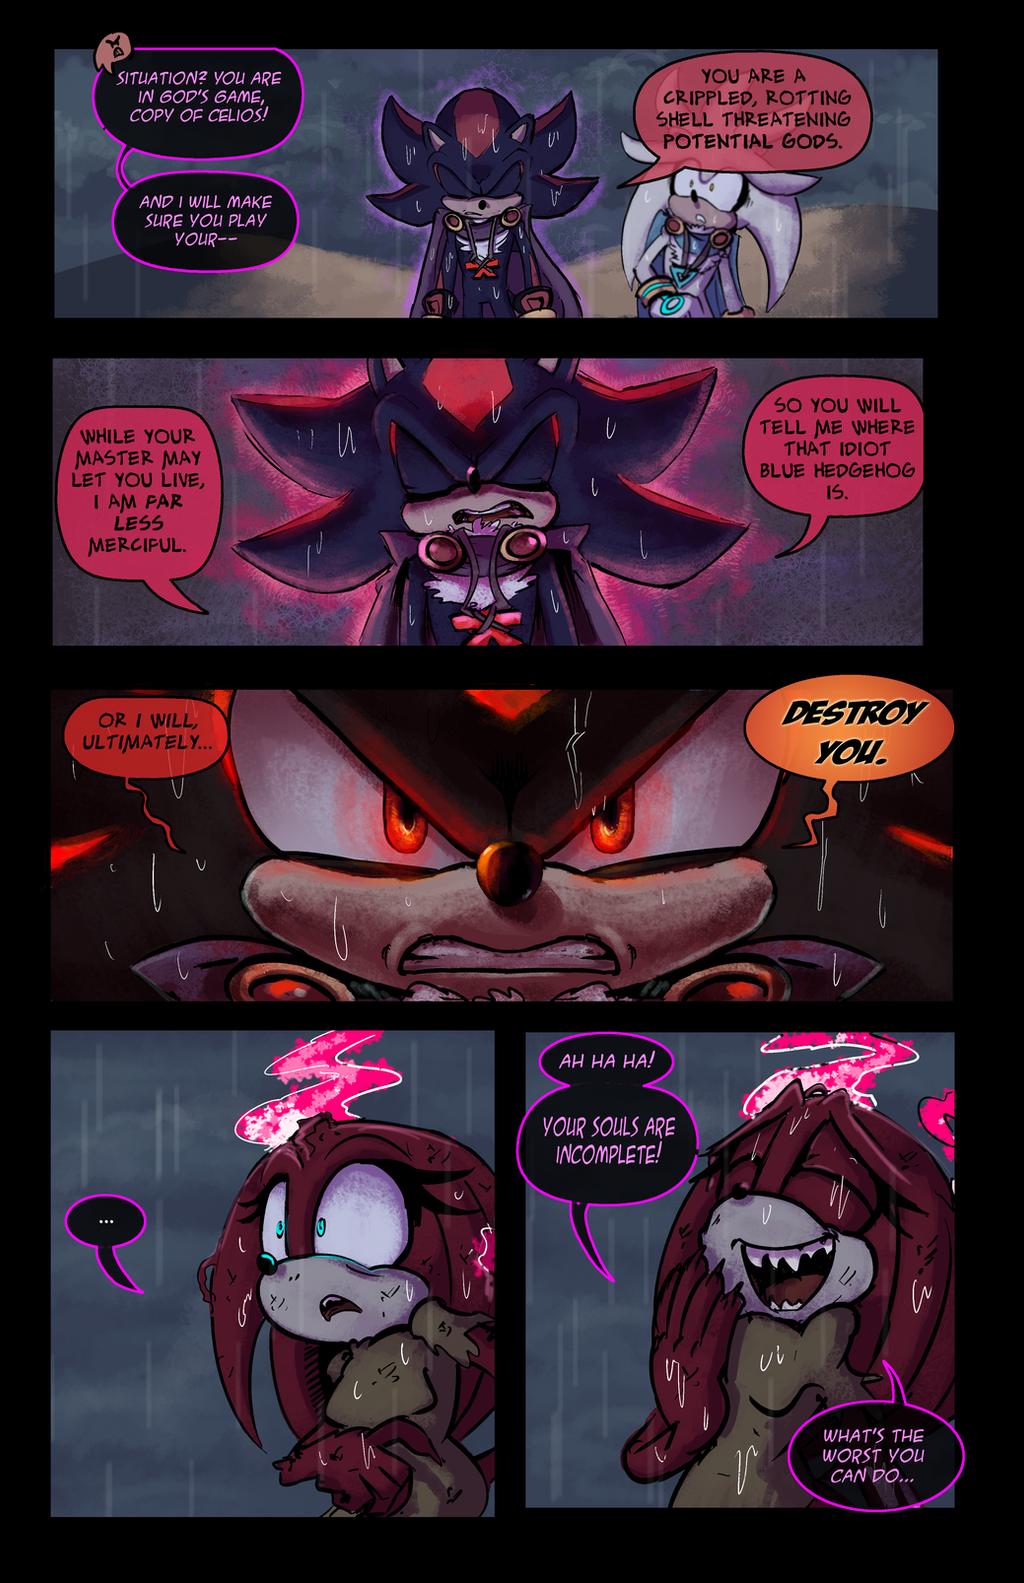 TMOM Issue 11 page 20 by Gigi-D